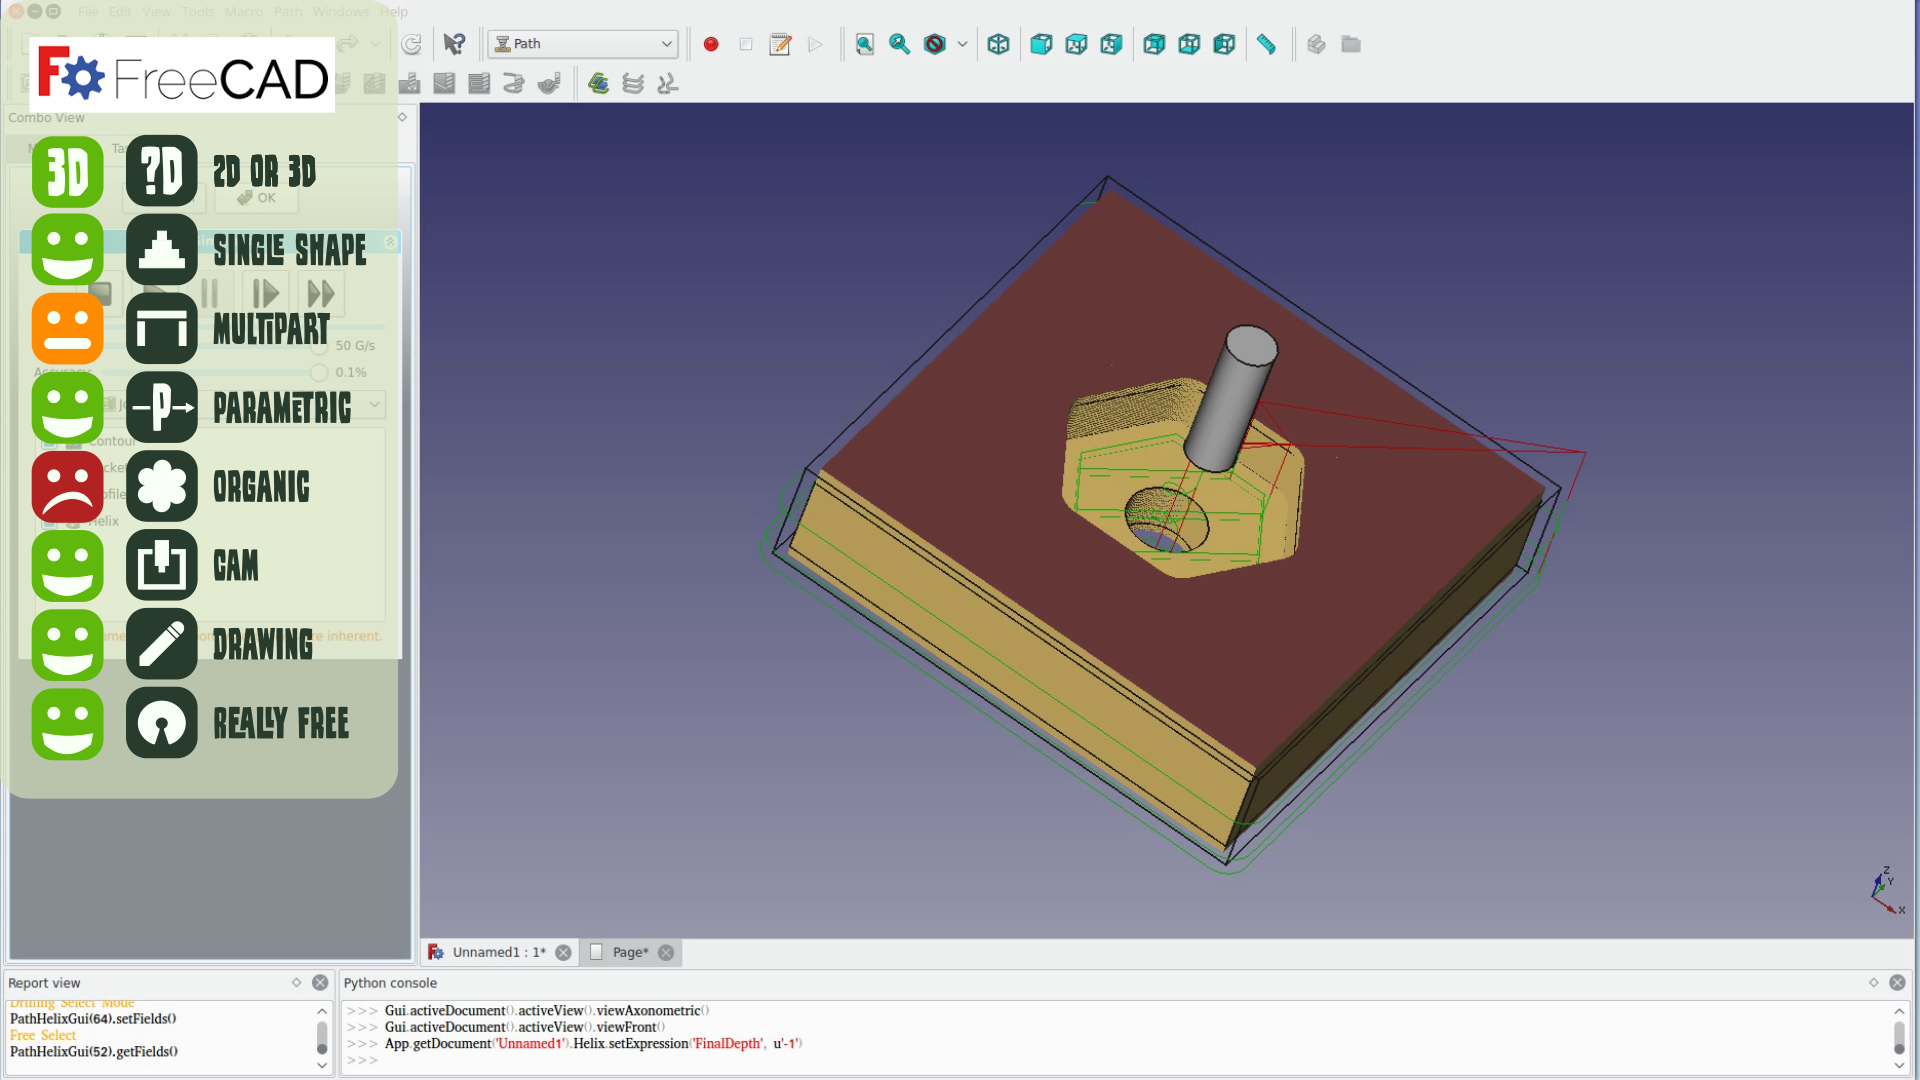 Free cad cam software for windows 10 | 14 Top Free CAD Packages to